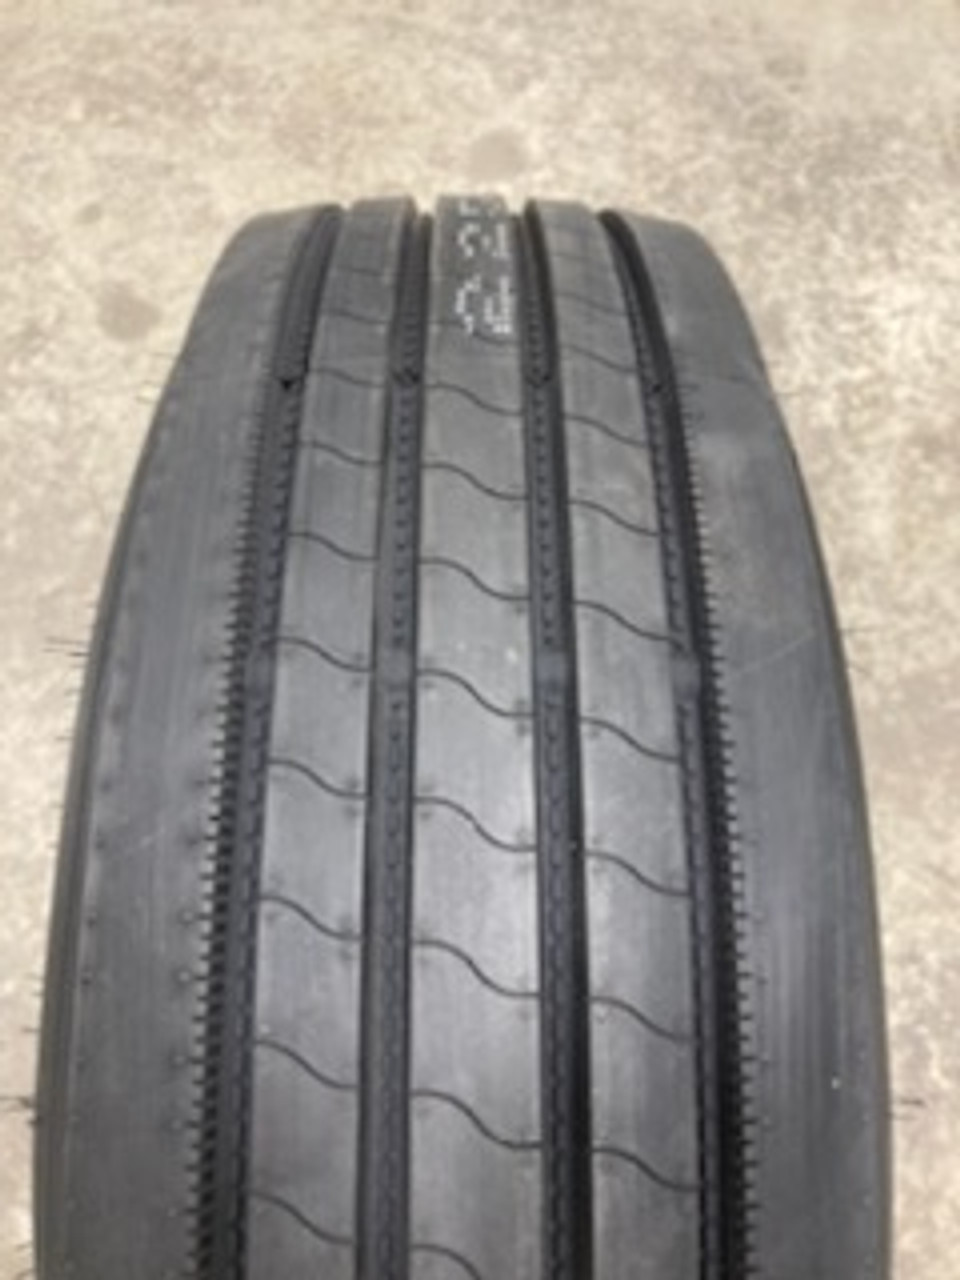 New Tire 225 75 15 K9 Trailer 12 Ply All Steel 3195 lbs ST225/75R15